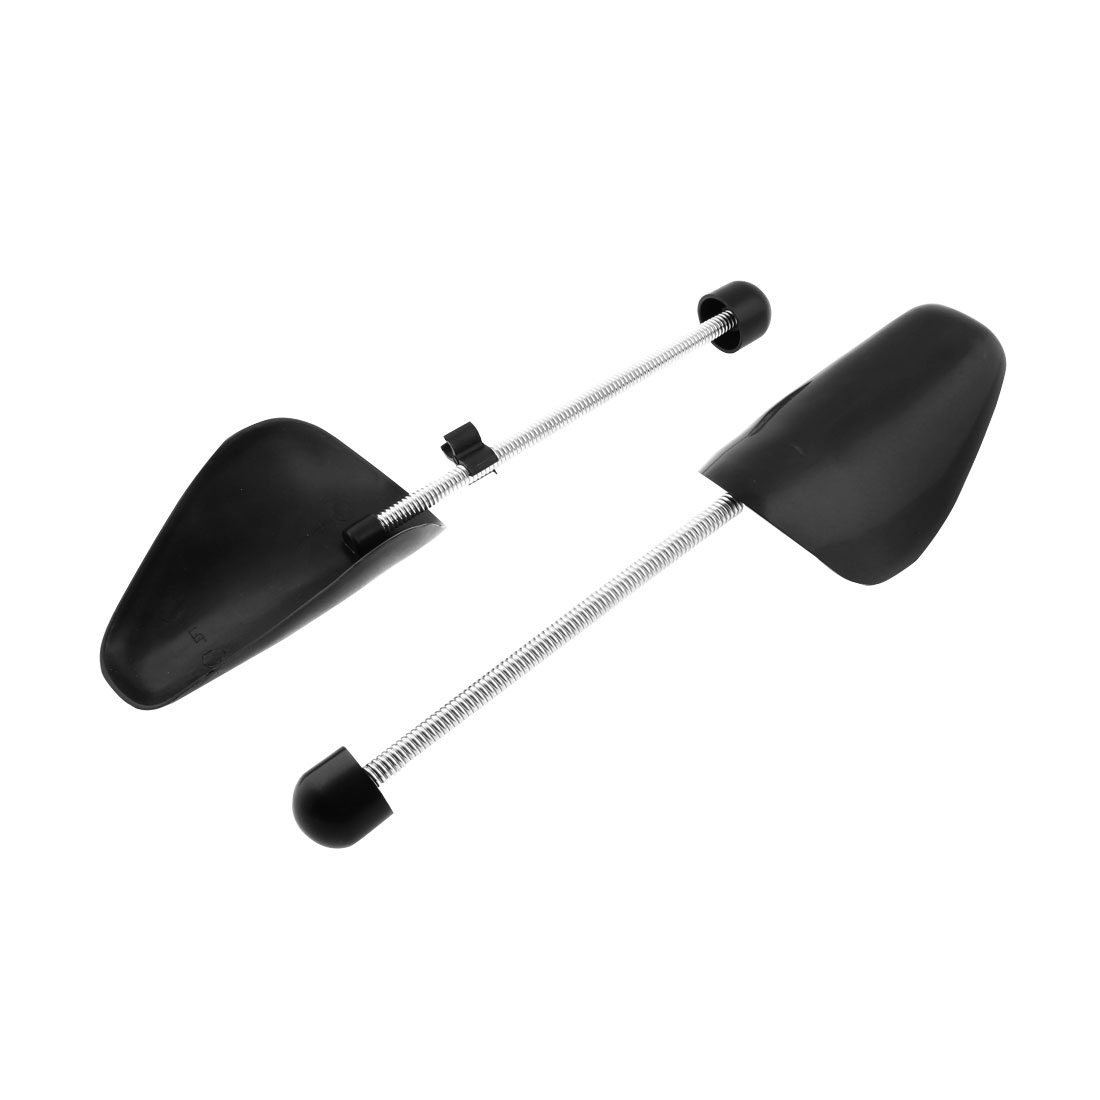 Men Women Spring Loaded Plastic Shoe Stretcher Shaper Keeper Black Pair